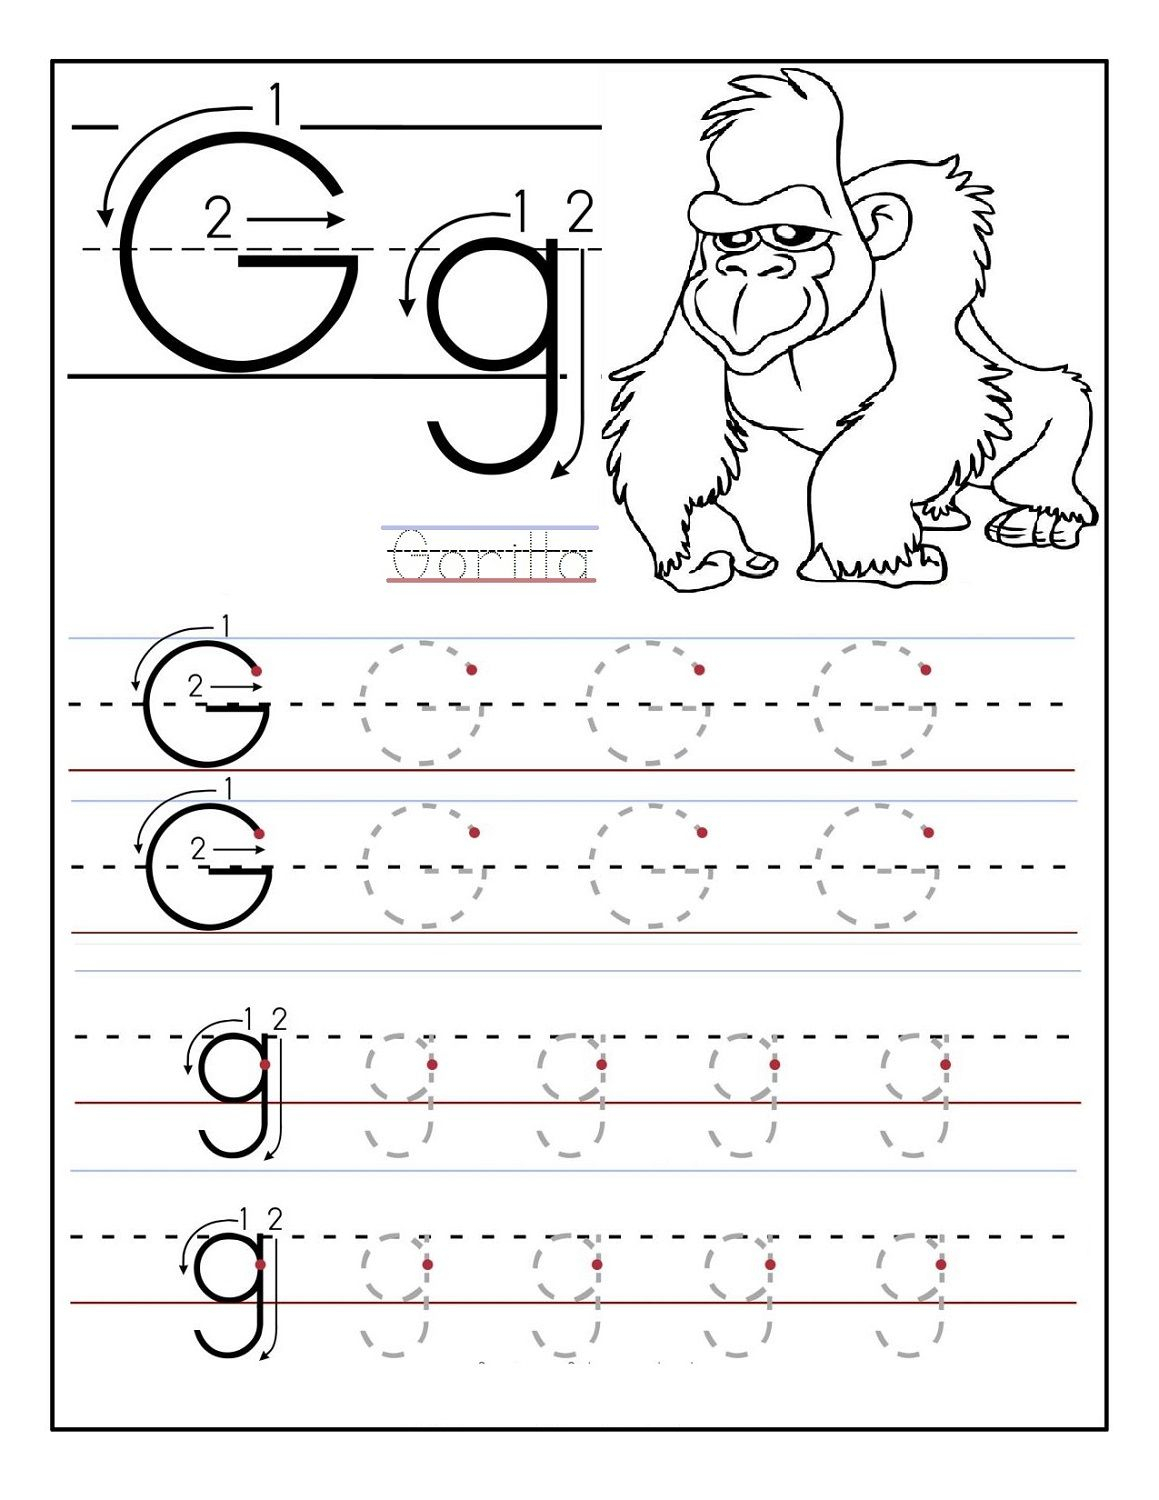 Free Traceable Alphabet Worksheets Gorilla | Alphabet pertaining to Letter G Tracing Page